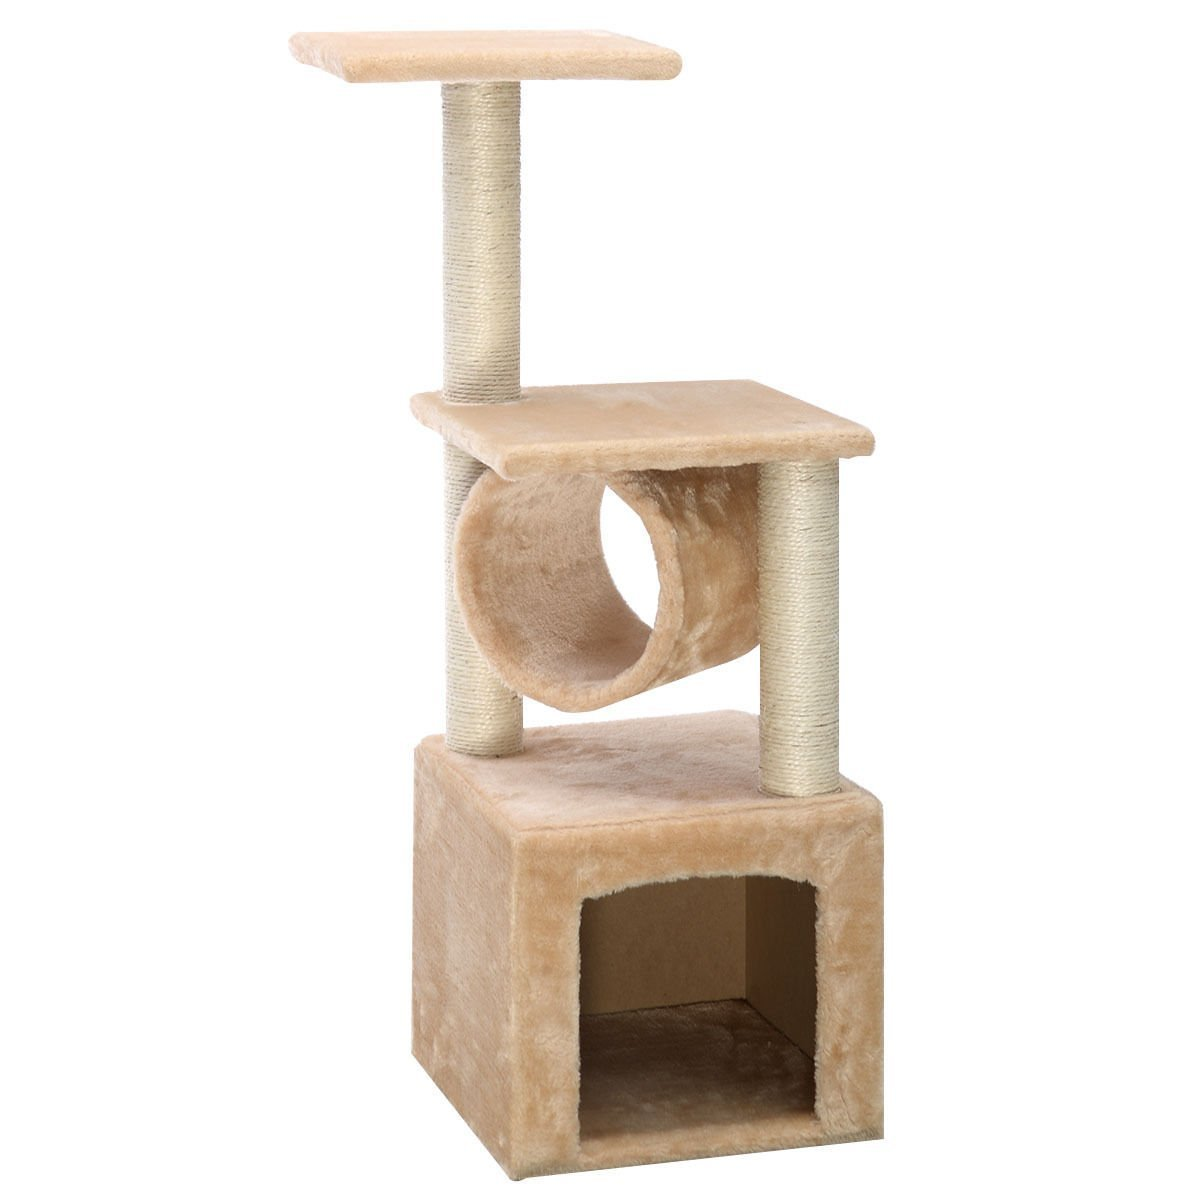 Cat Tree Tower Condo Kitten Indoor Bed Perch Modern Sturdy Scratcher Scratching Post Furniture Play Pet Home House, 36'' Height, Beige